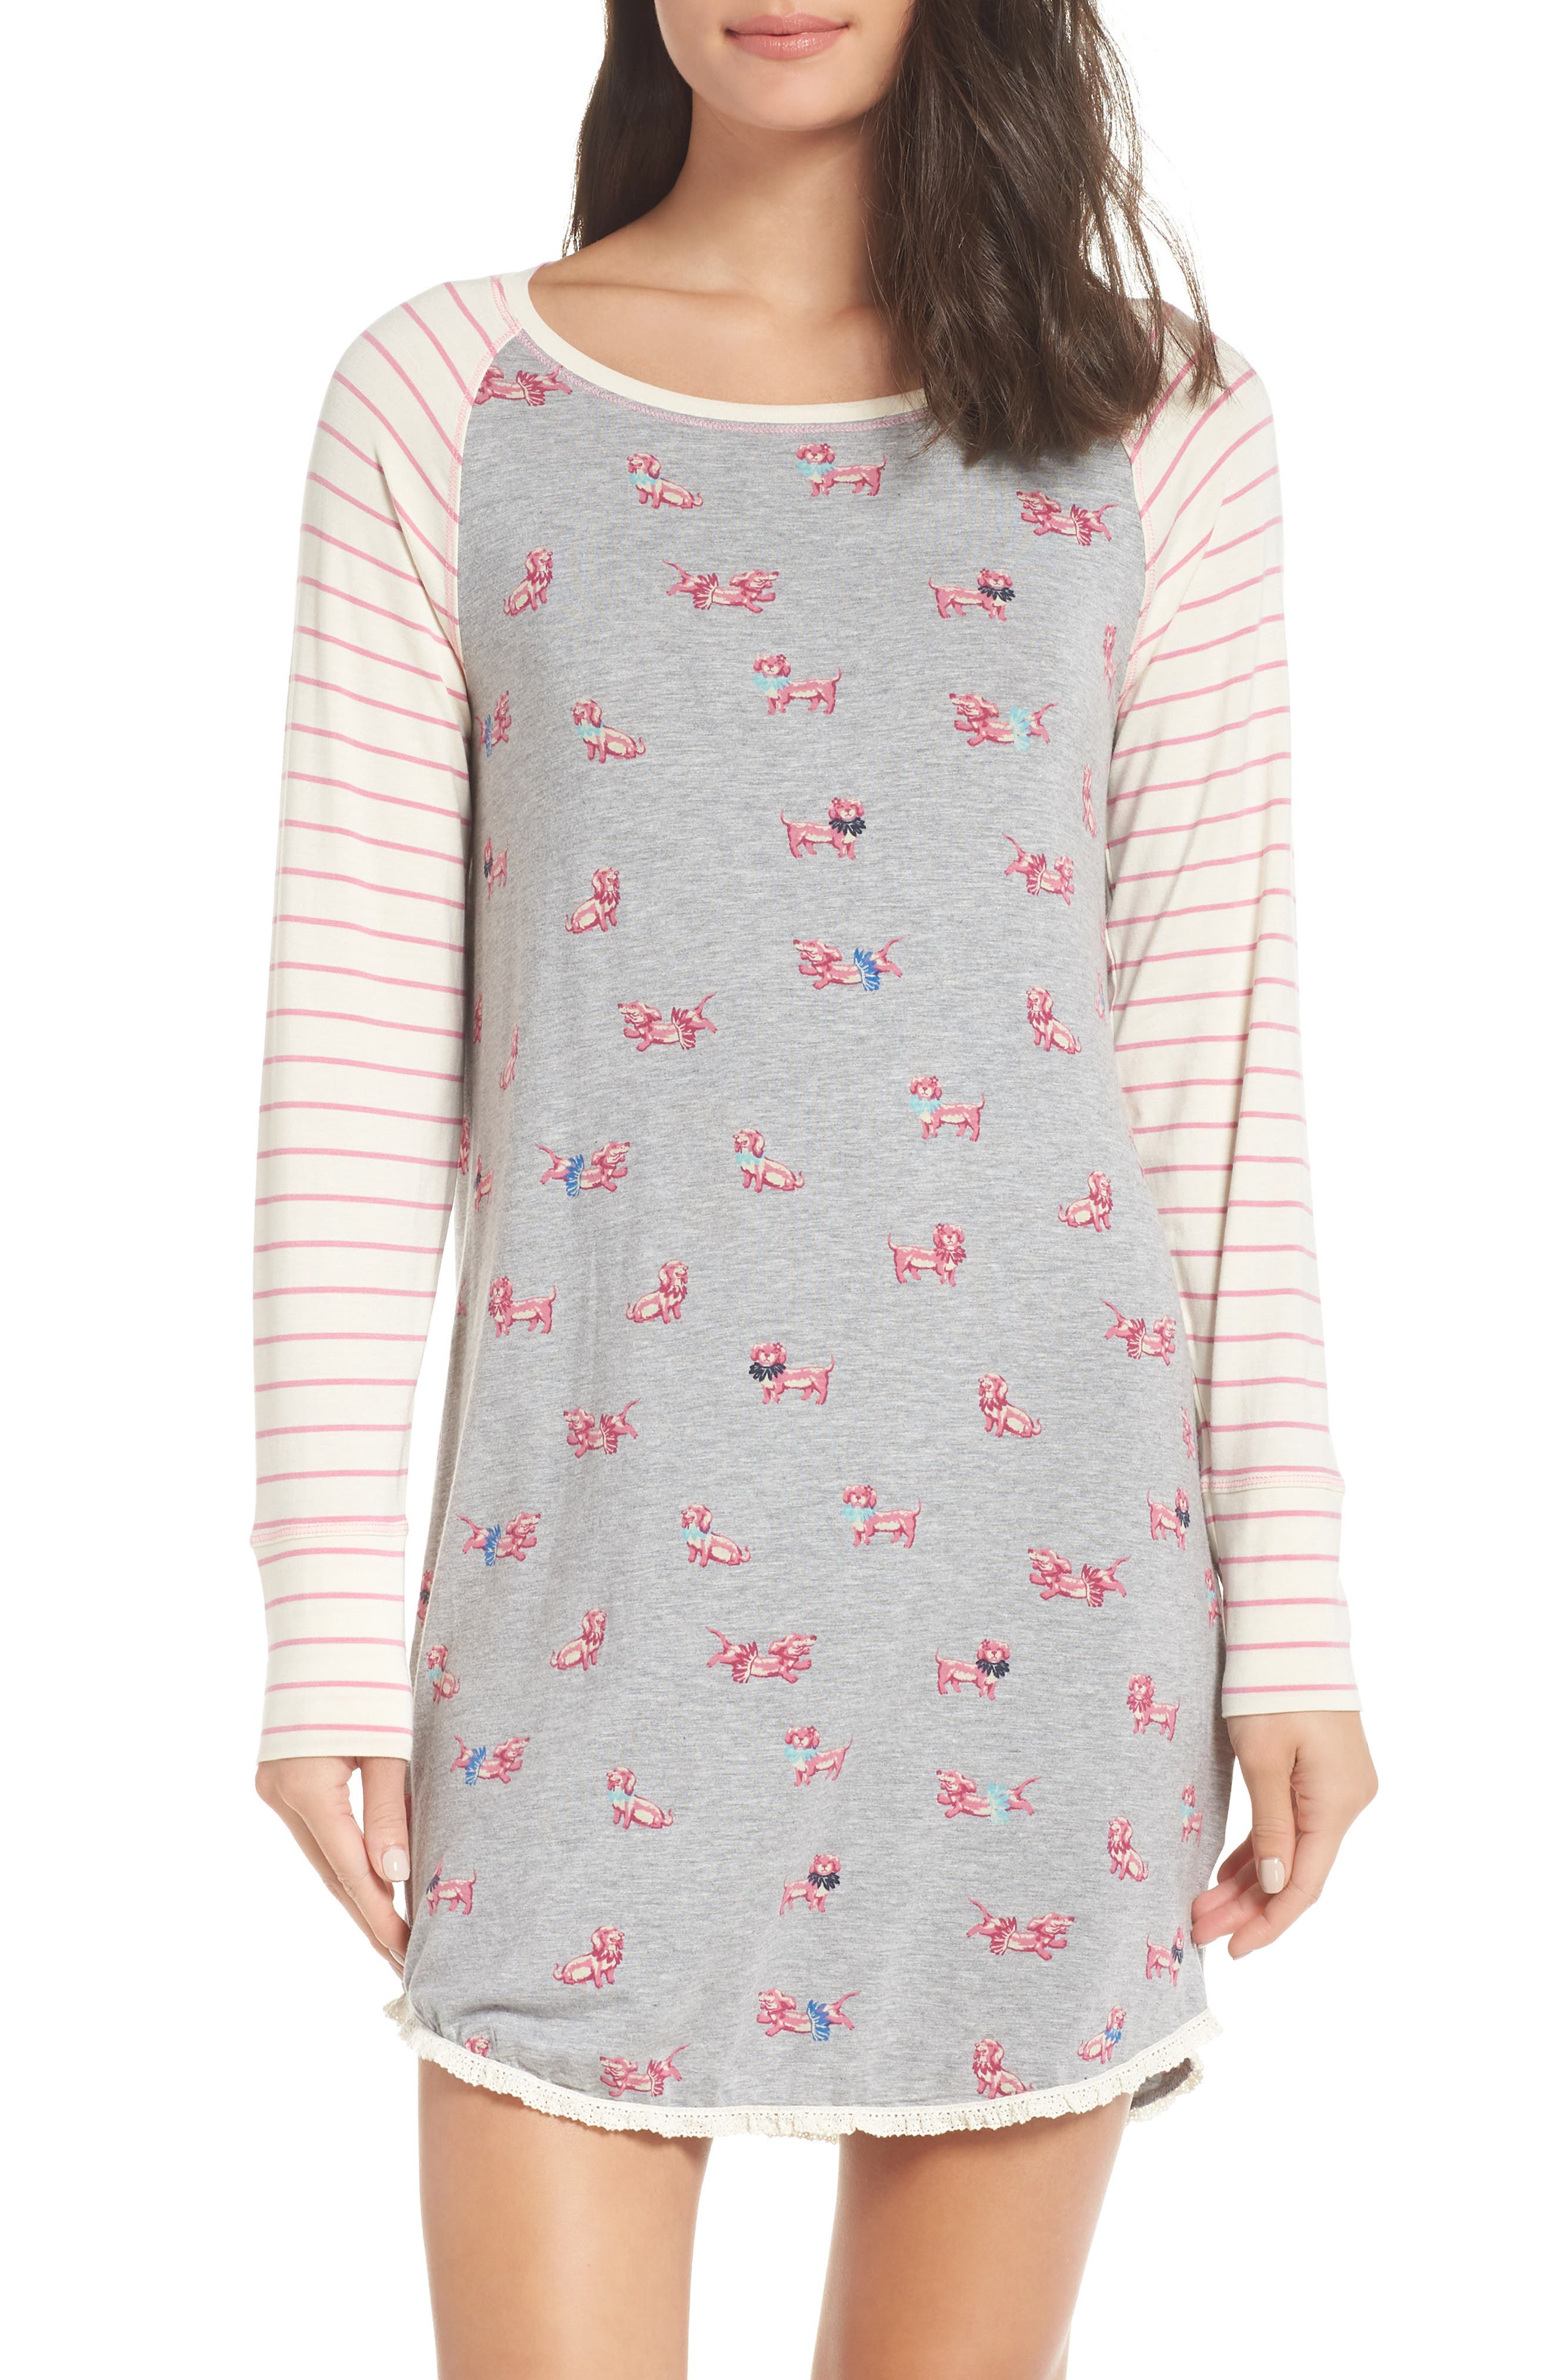 HATLEY Nighty Nightshirt, Main, color, 020